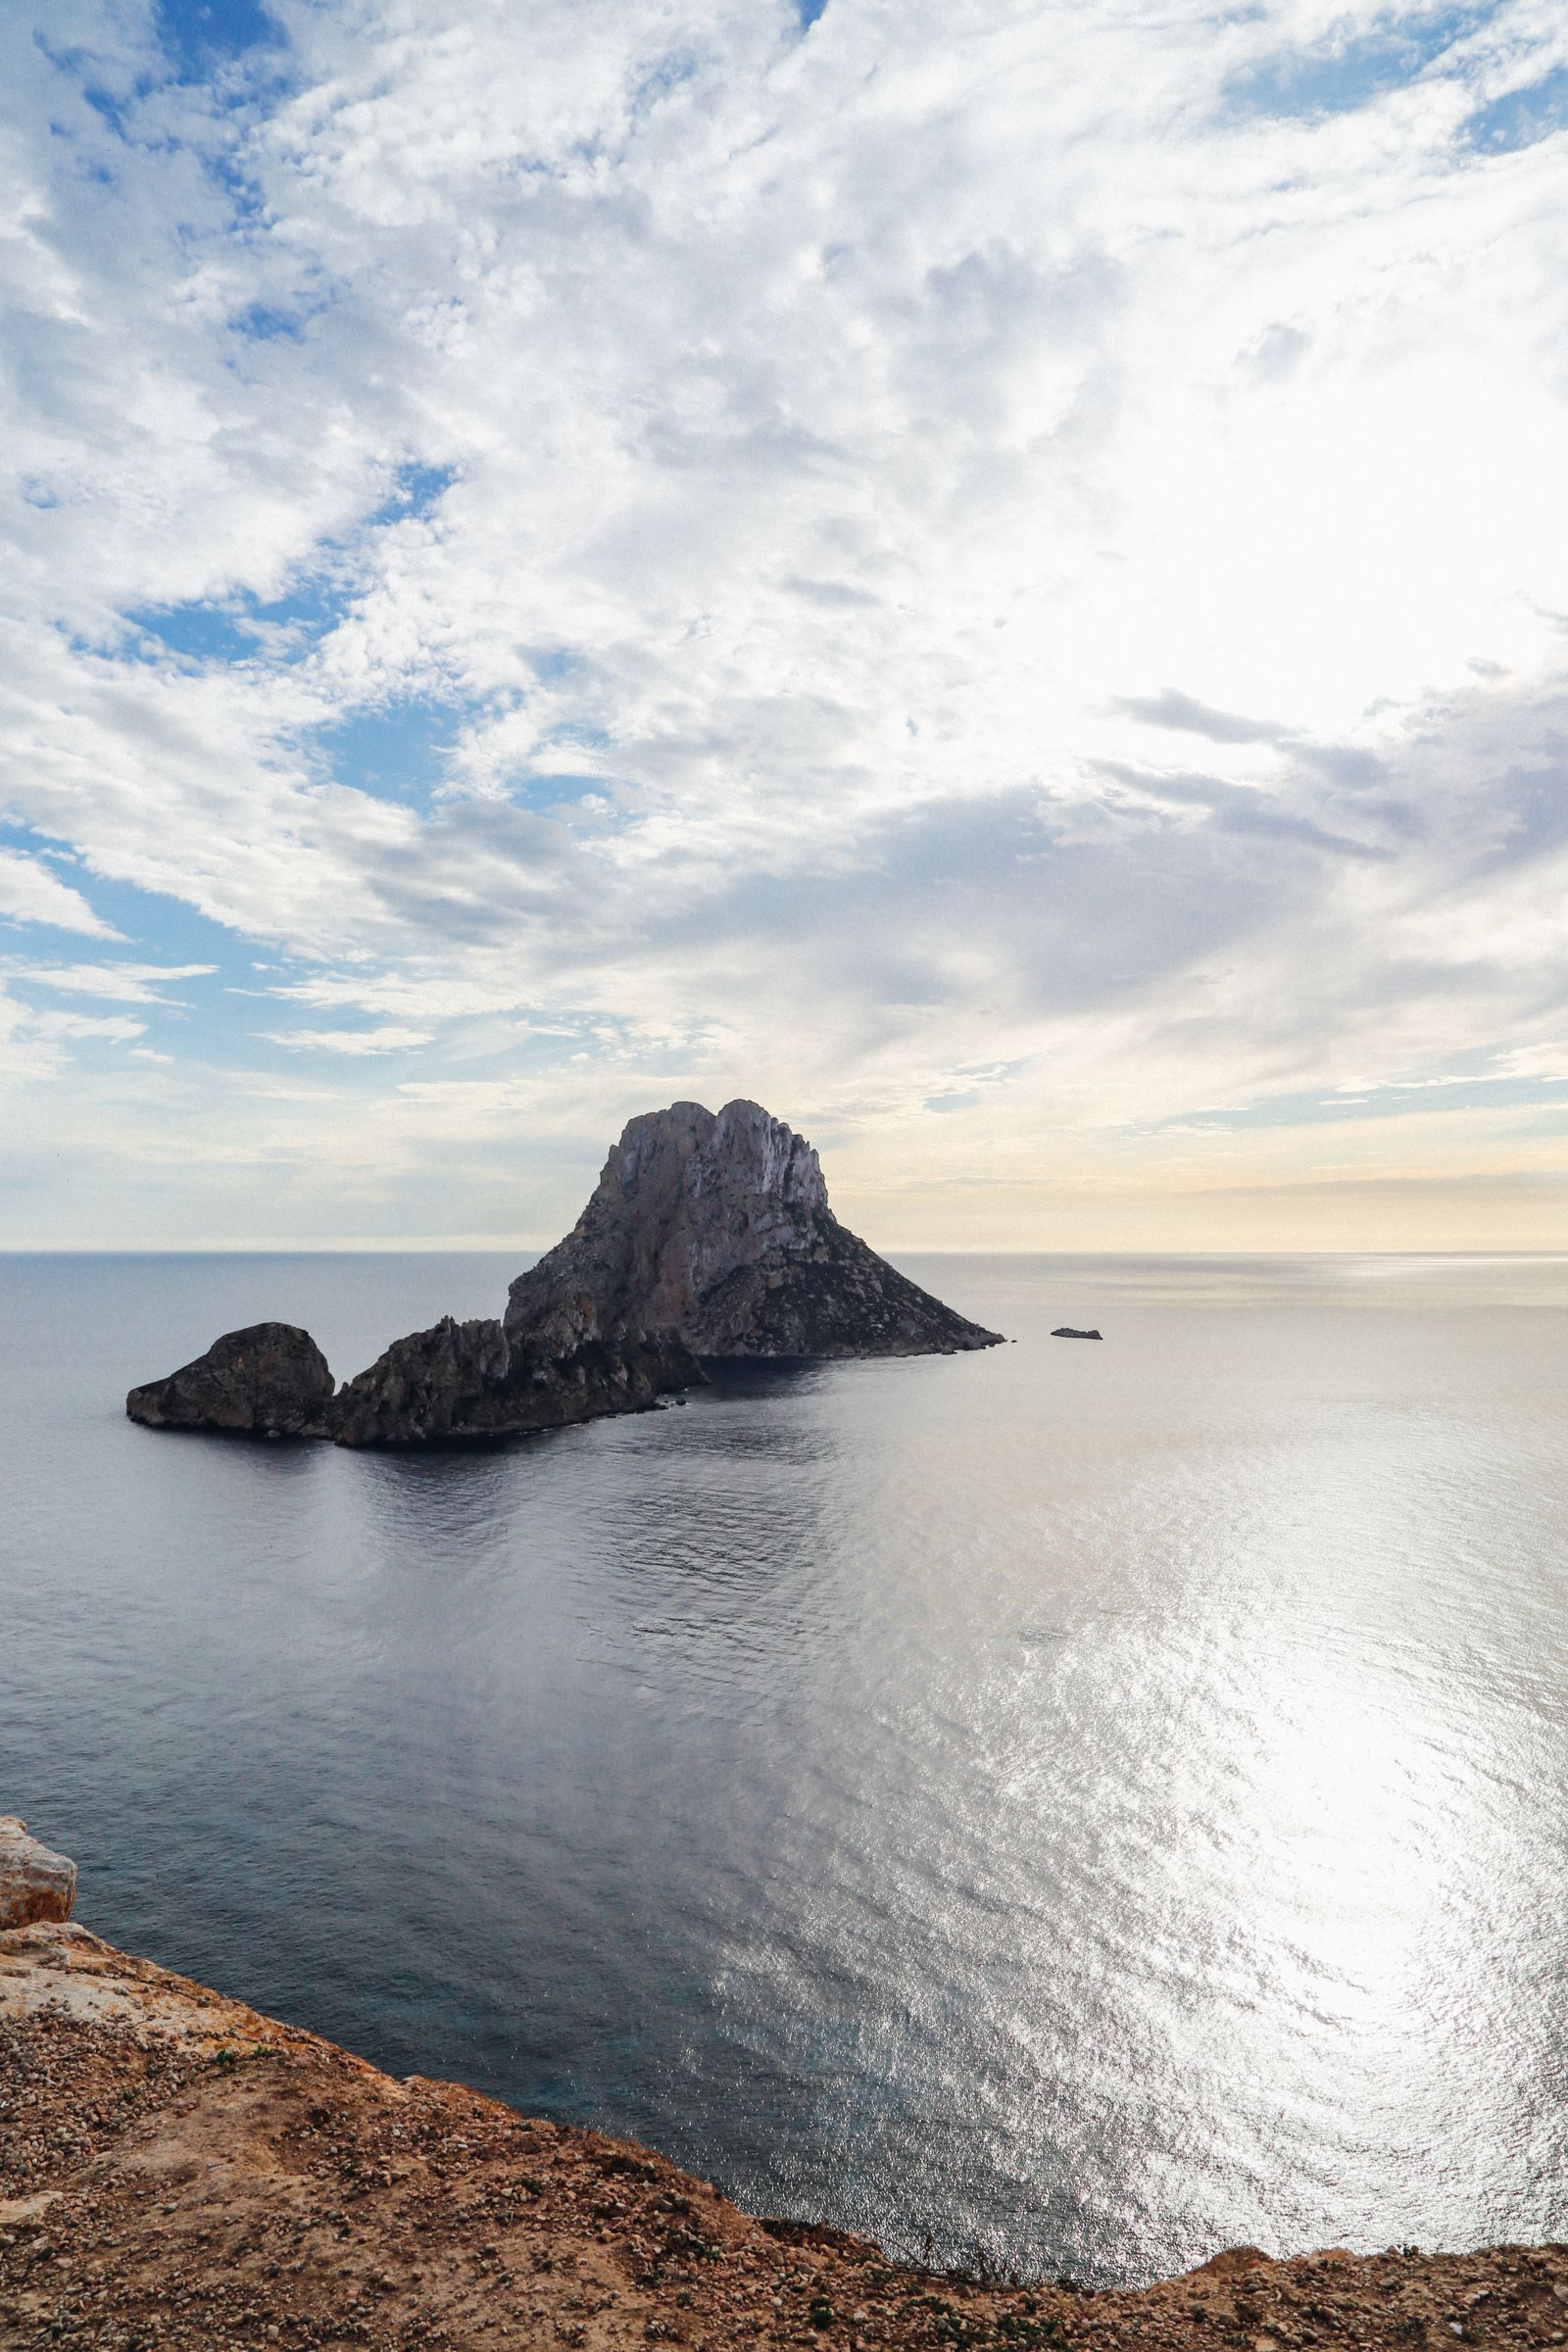 The Best Place To Watch The Sunset In Ibiza AND Where To Go For An Amazing 10 Course Gourmet Dinner! (8)